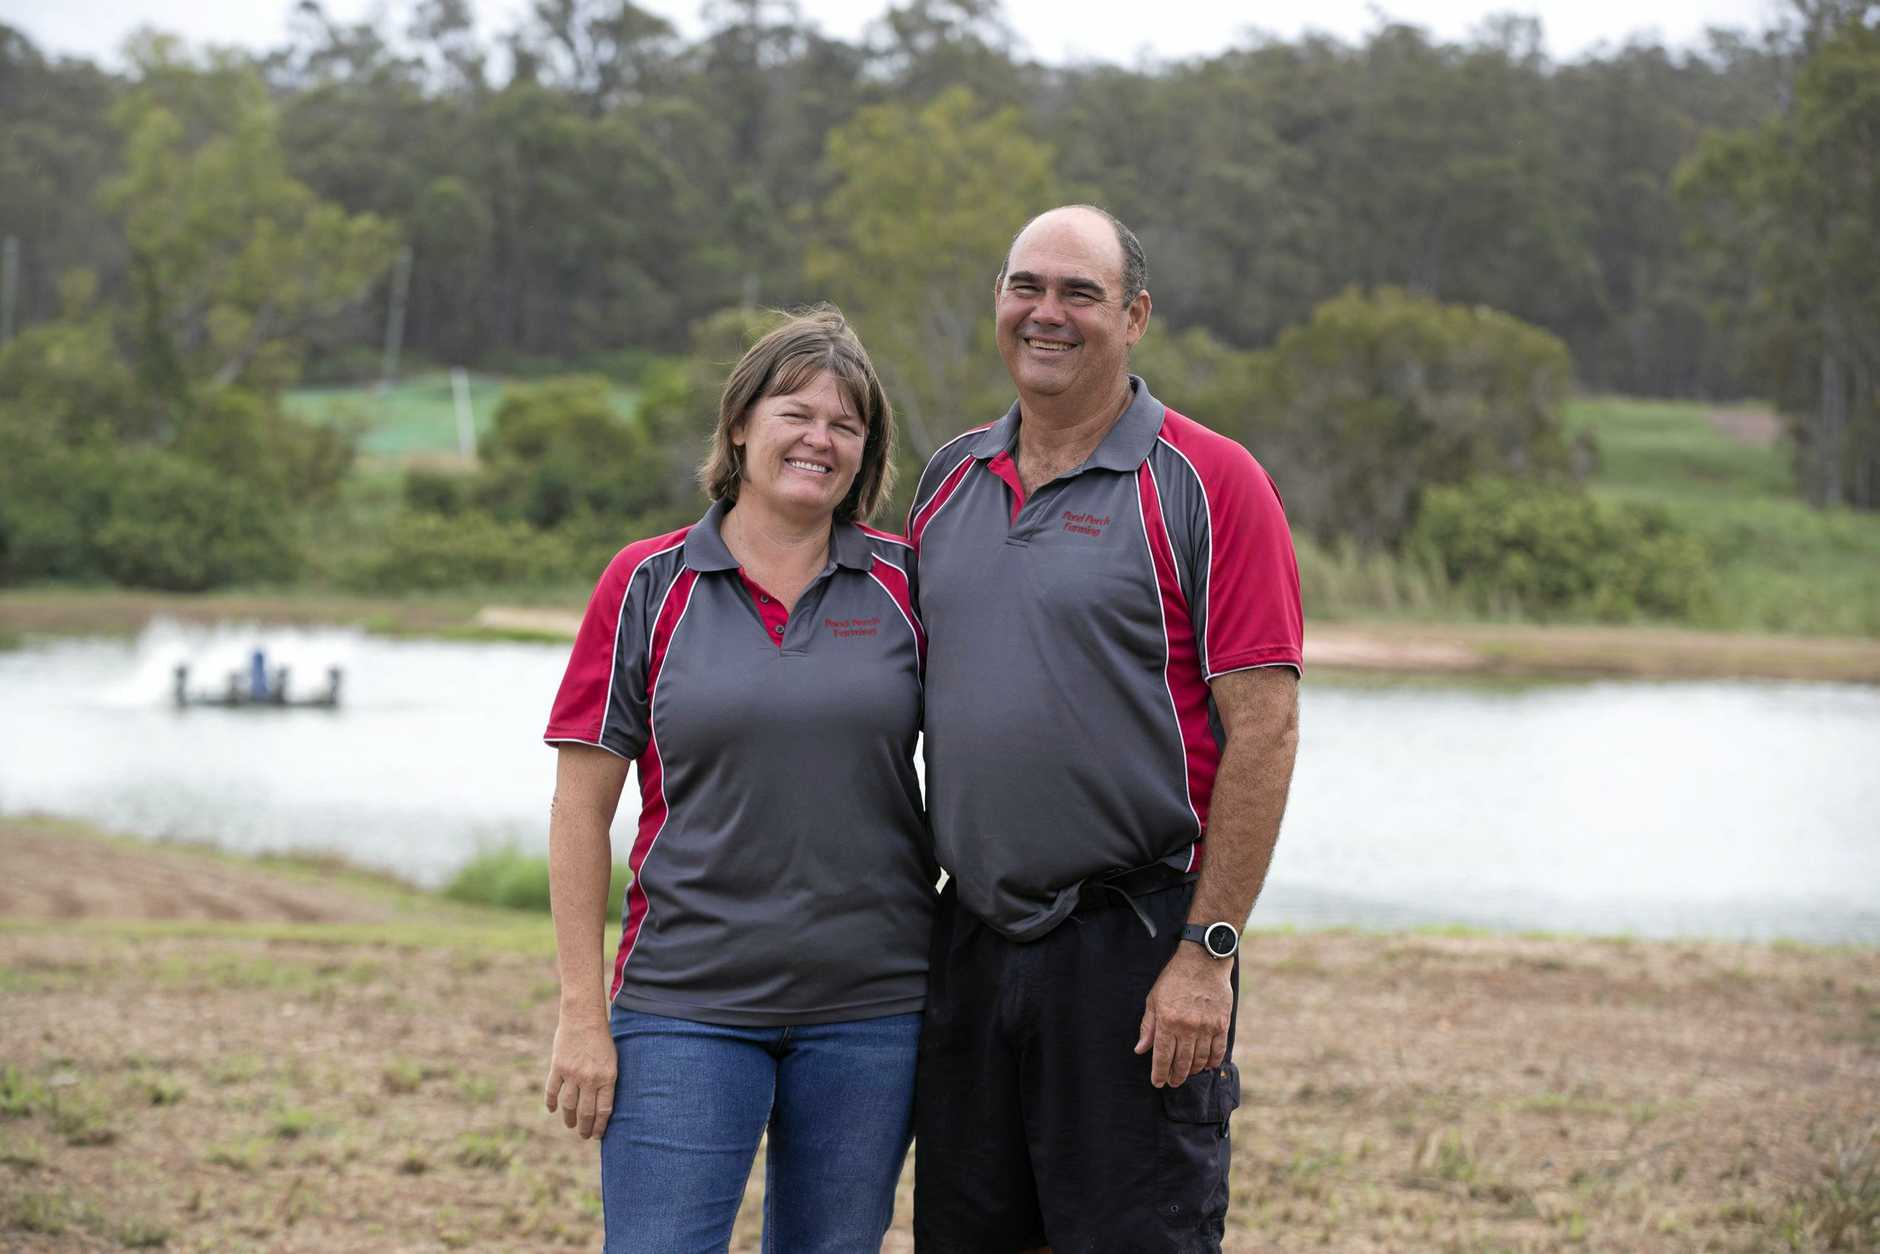 ACROSS THE POND: Childers aquaculture producers Lisa and Steven Volz invested in solar power to cut energy costs on their farm.